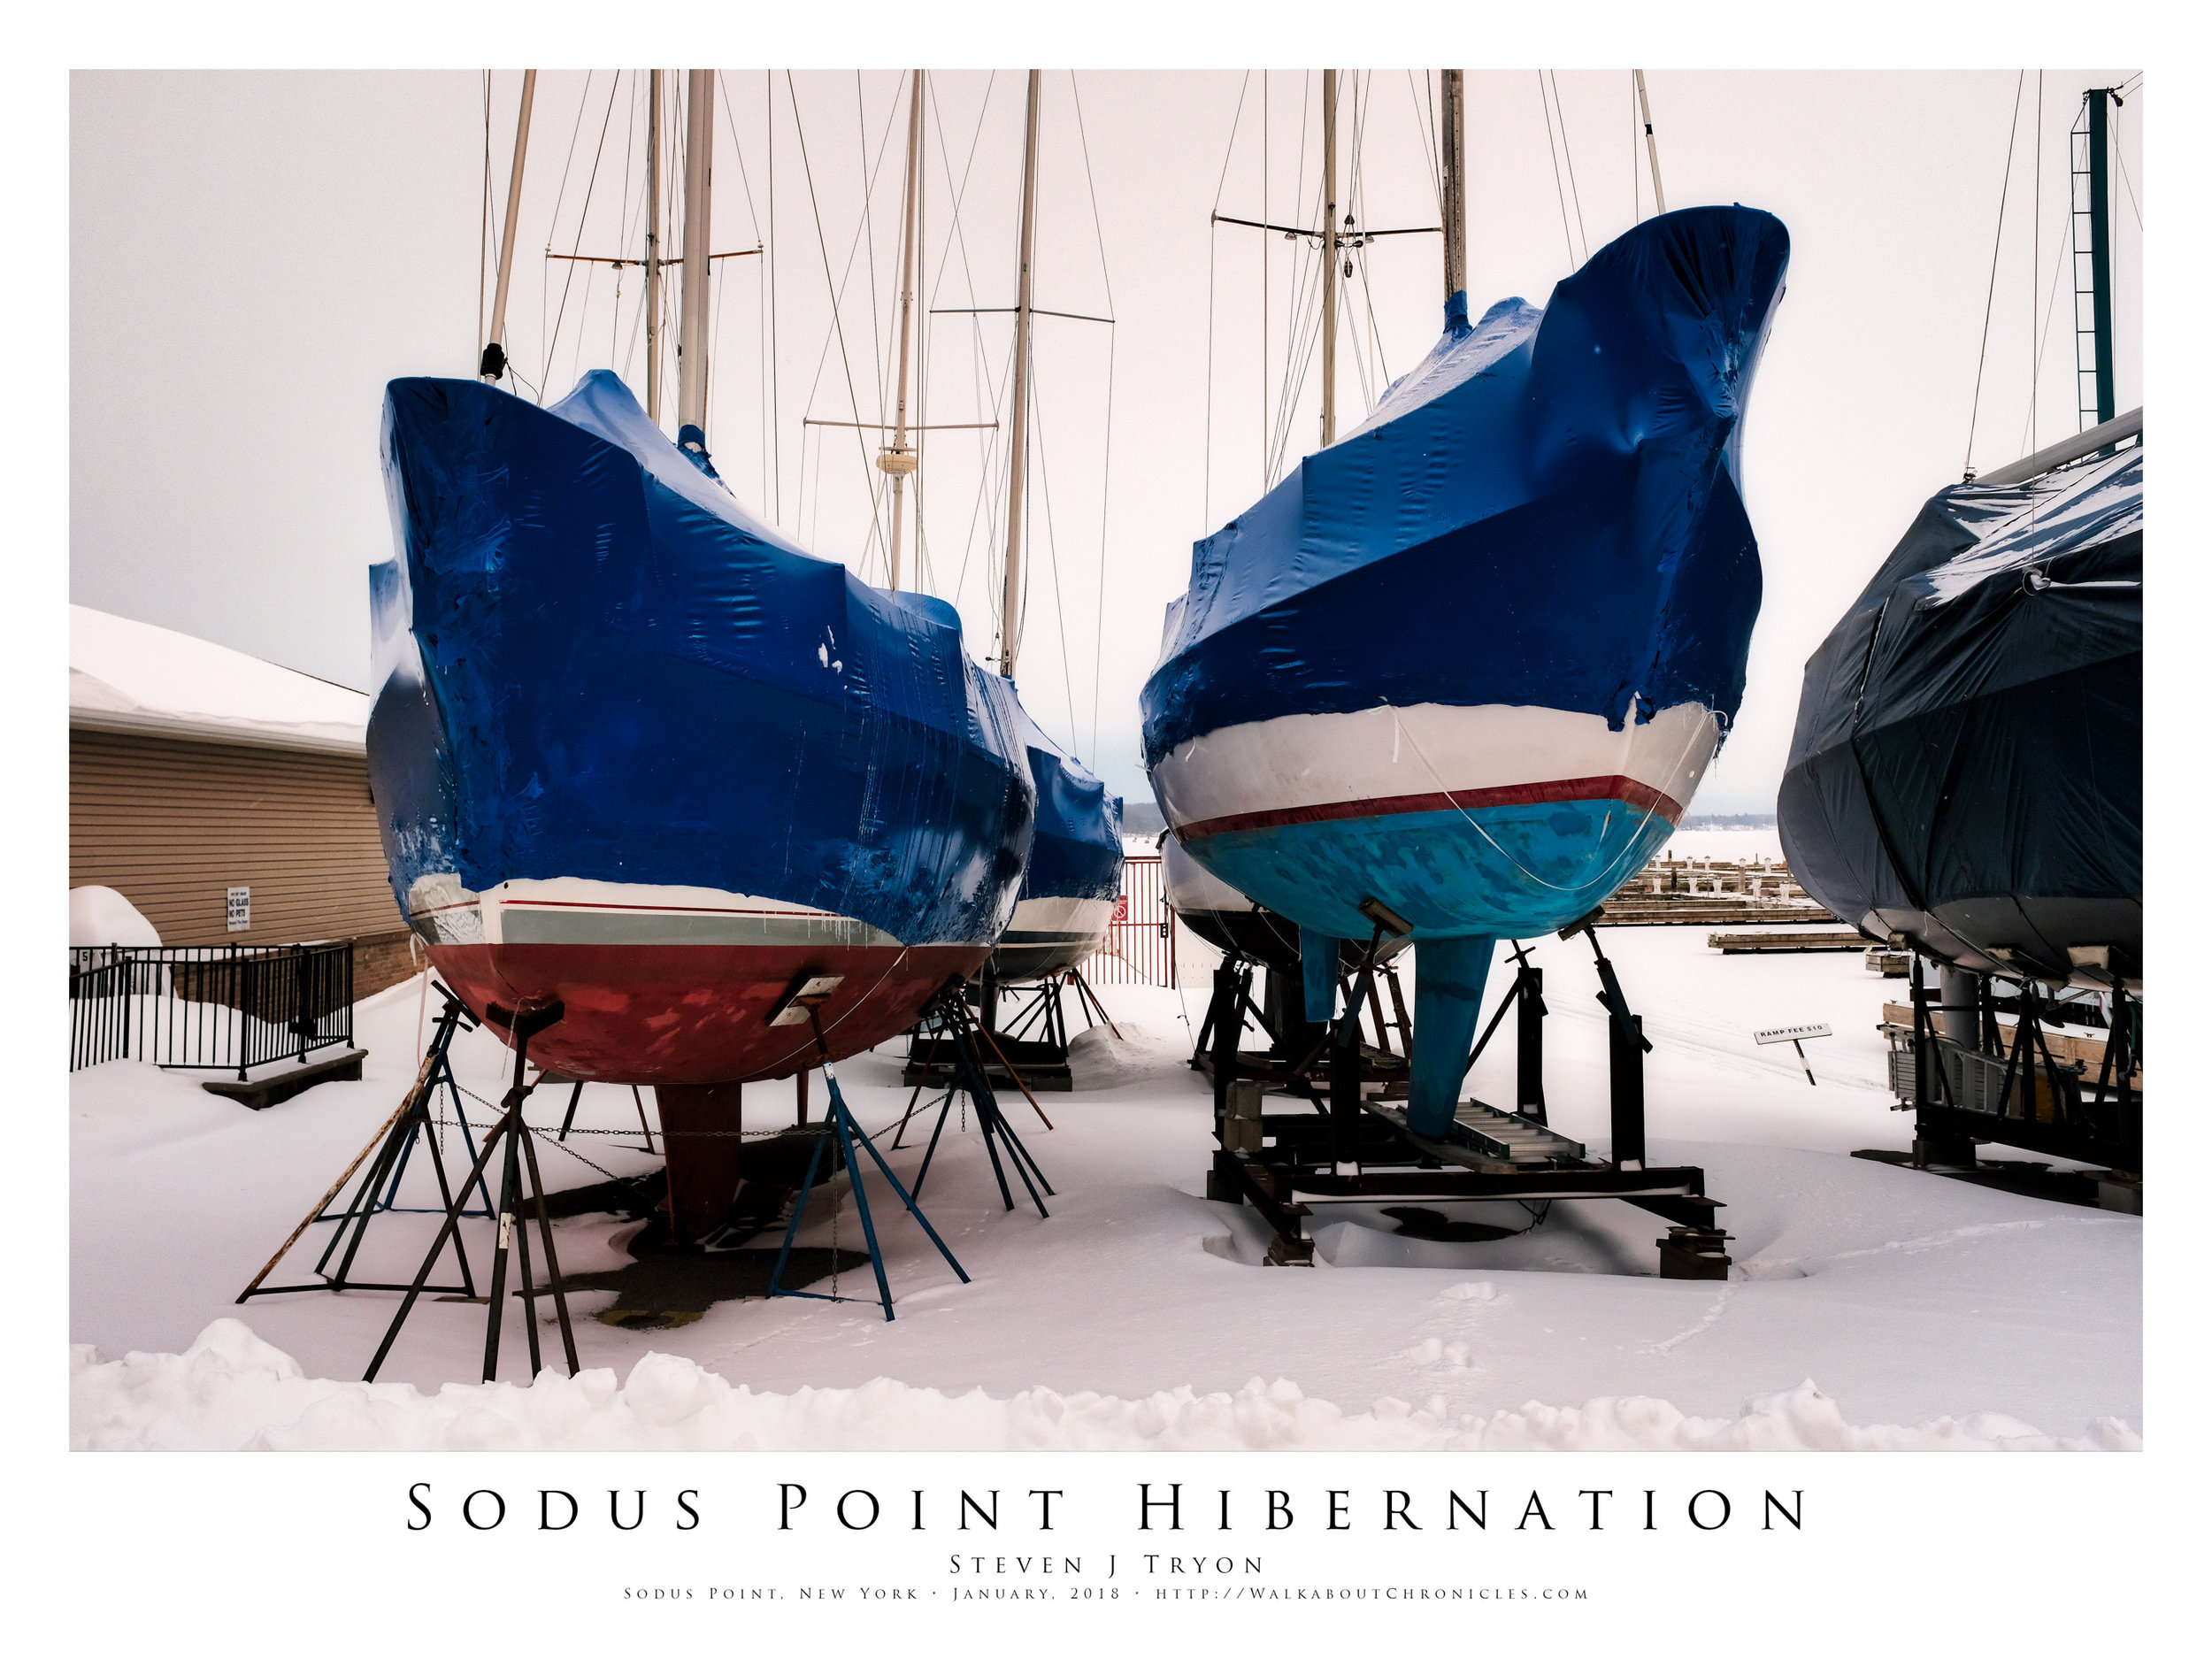 Sodus Point Hibernation